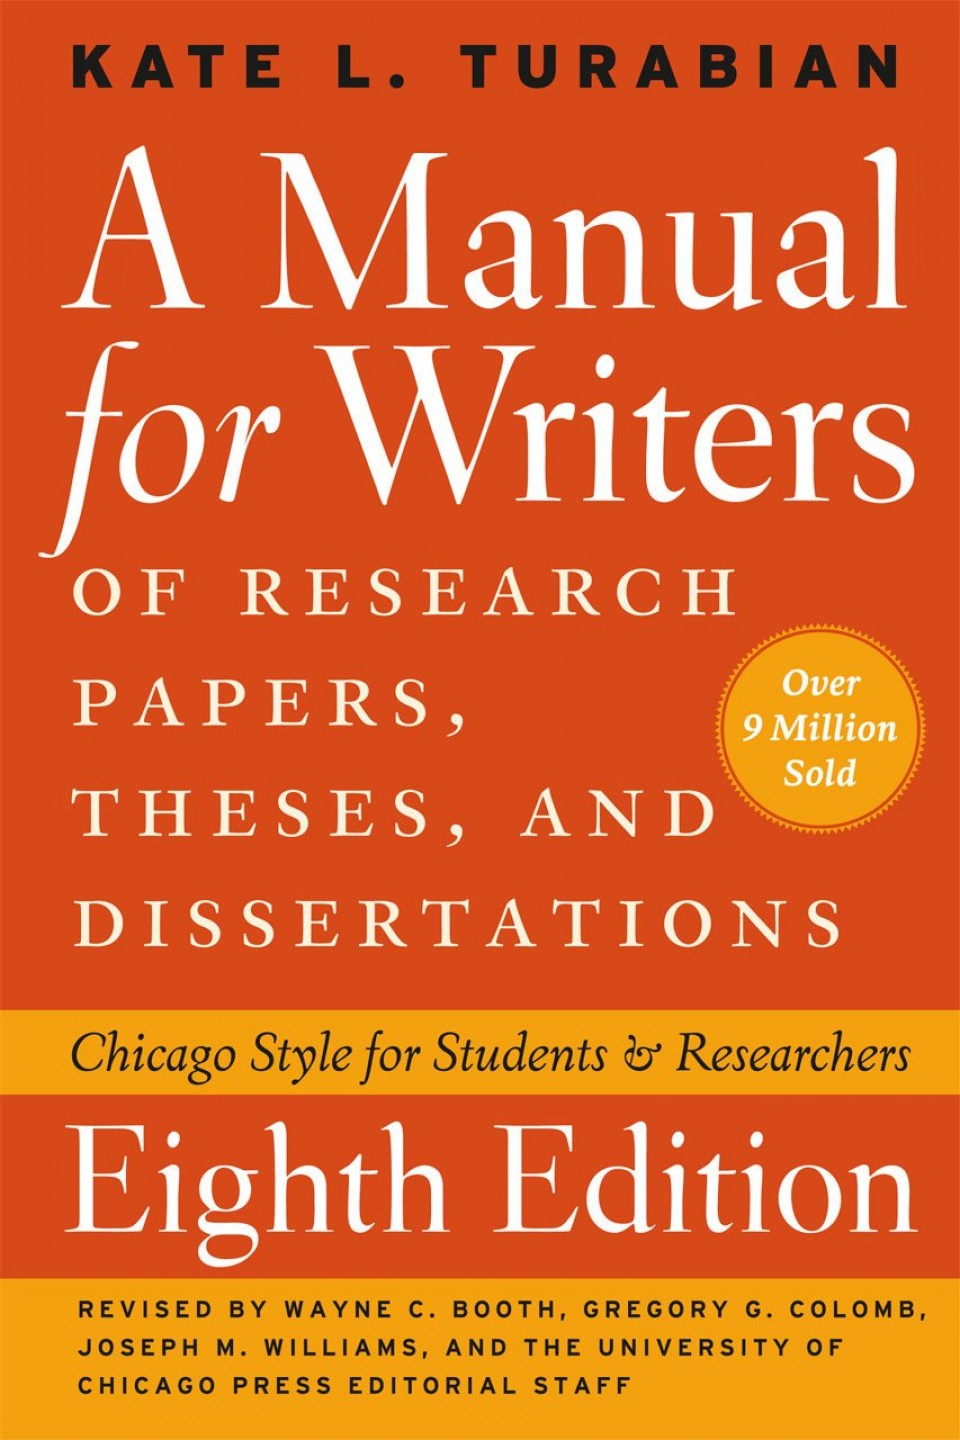 013 Manual For Writers Of Research Papers Theses And Dissertations Ebook Paper 71zqdmudhcl  Sl1280 Unbelievable A960